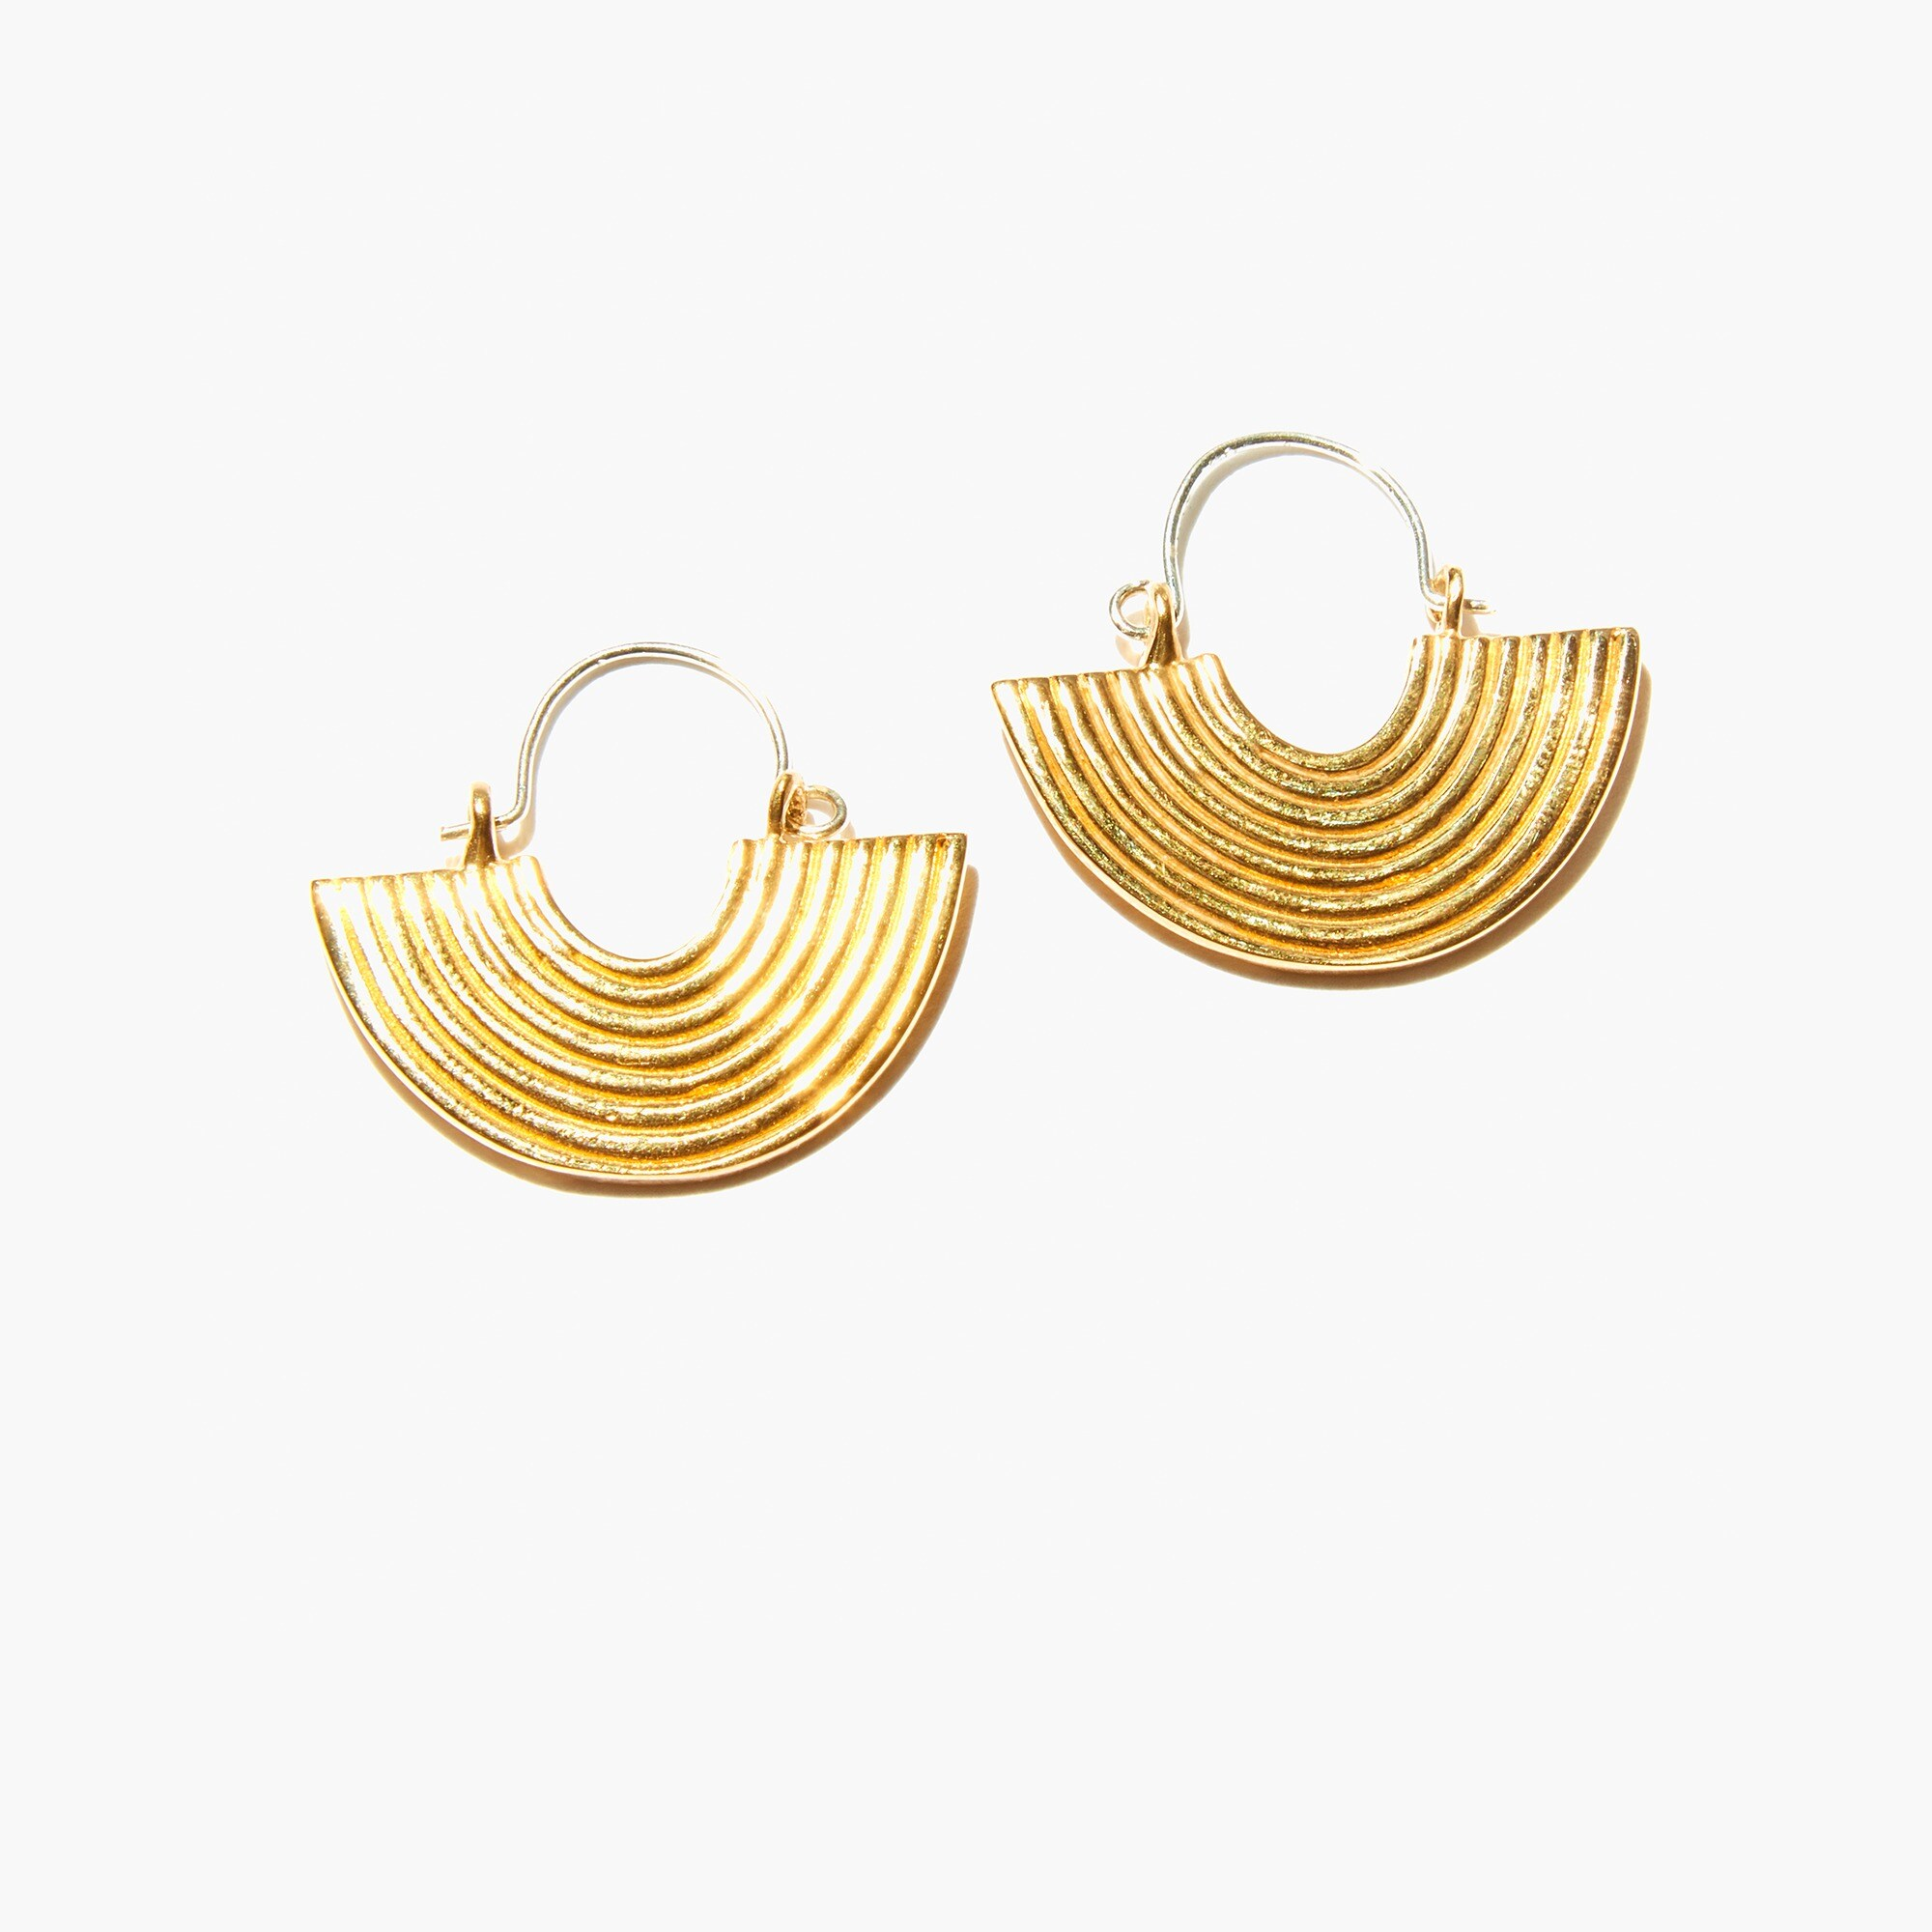 Odette New York® Aalto earrings women j.crew in good company c